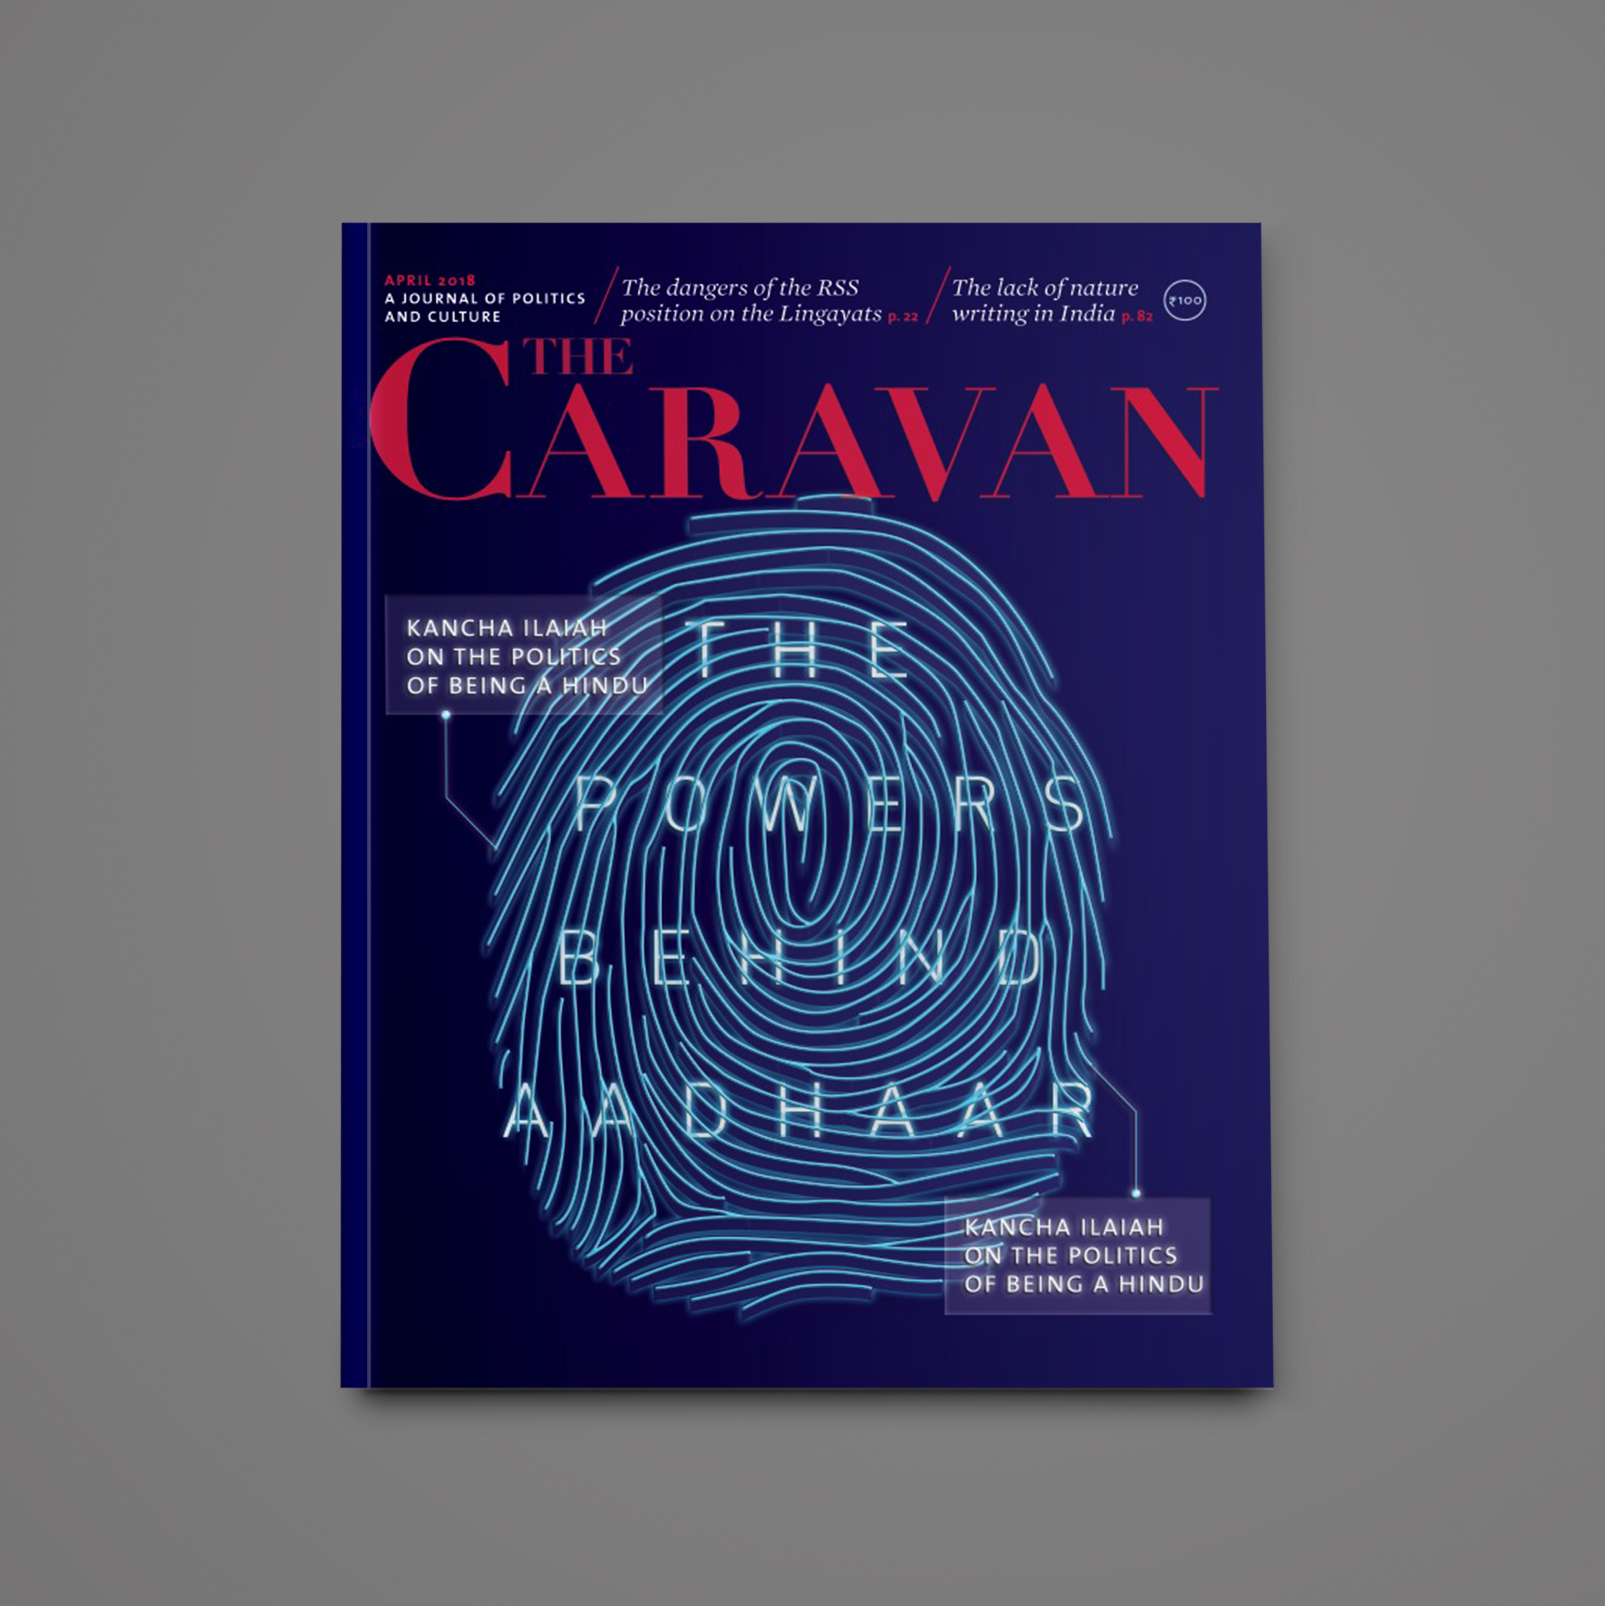 Unused option for the cover for the May 2018 issue of The Caravan Magazine that uncovered private interests behind Aadhaar.